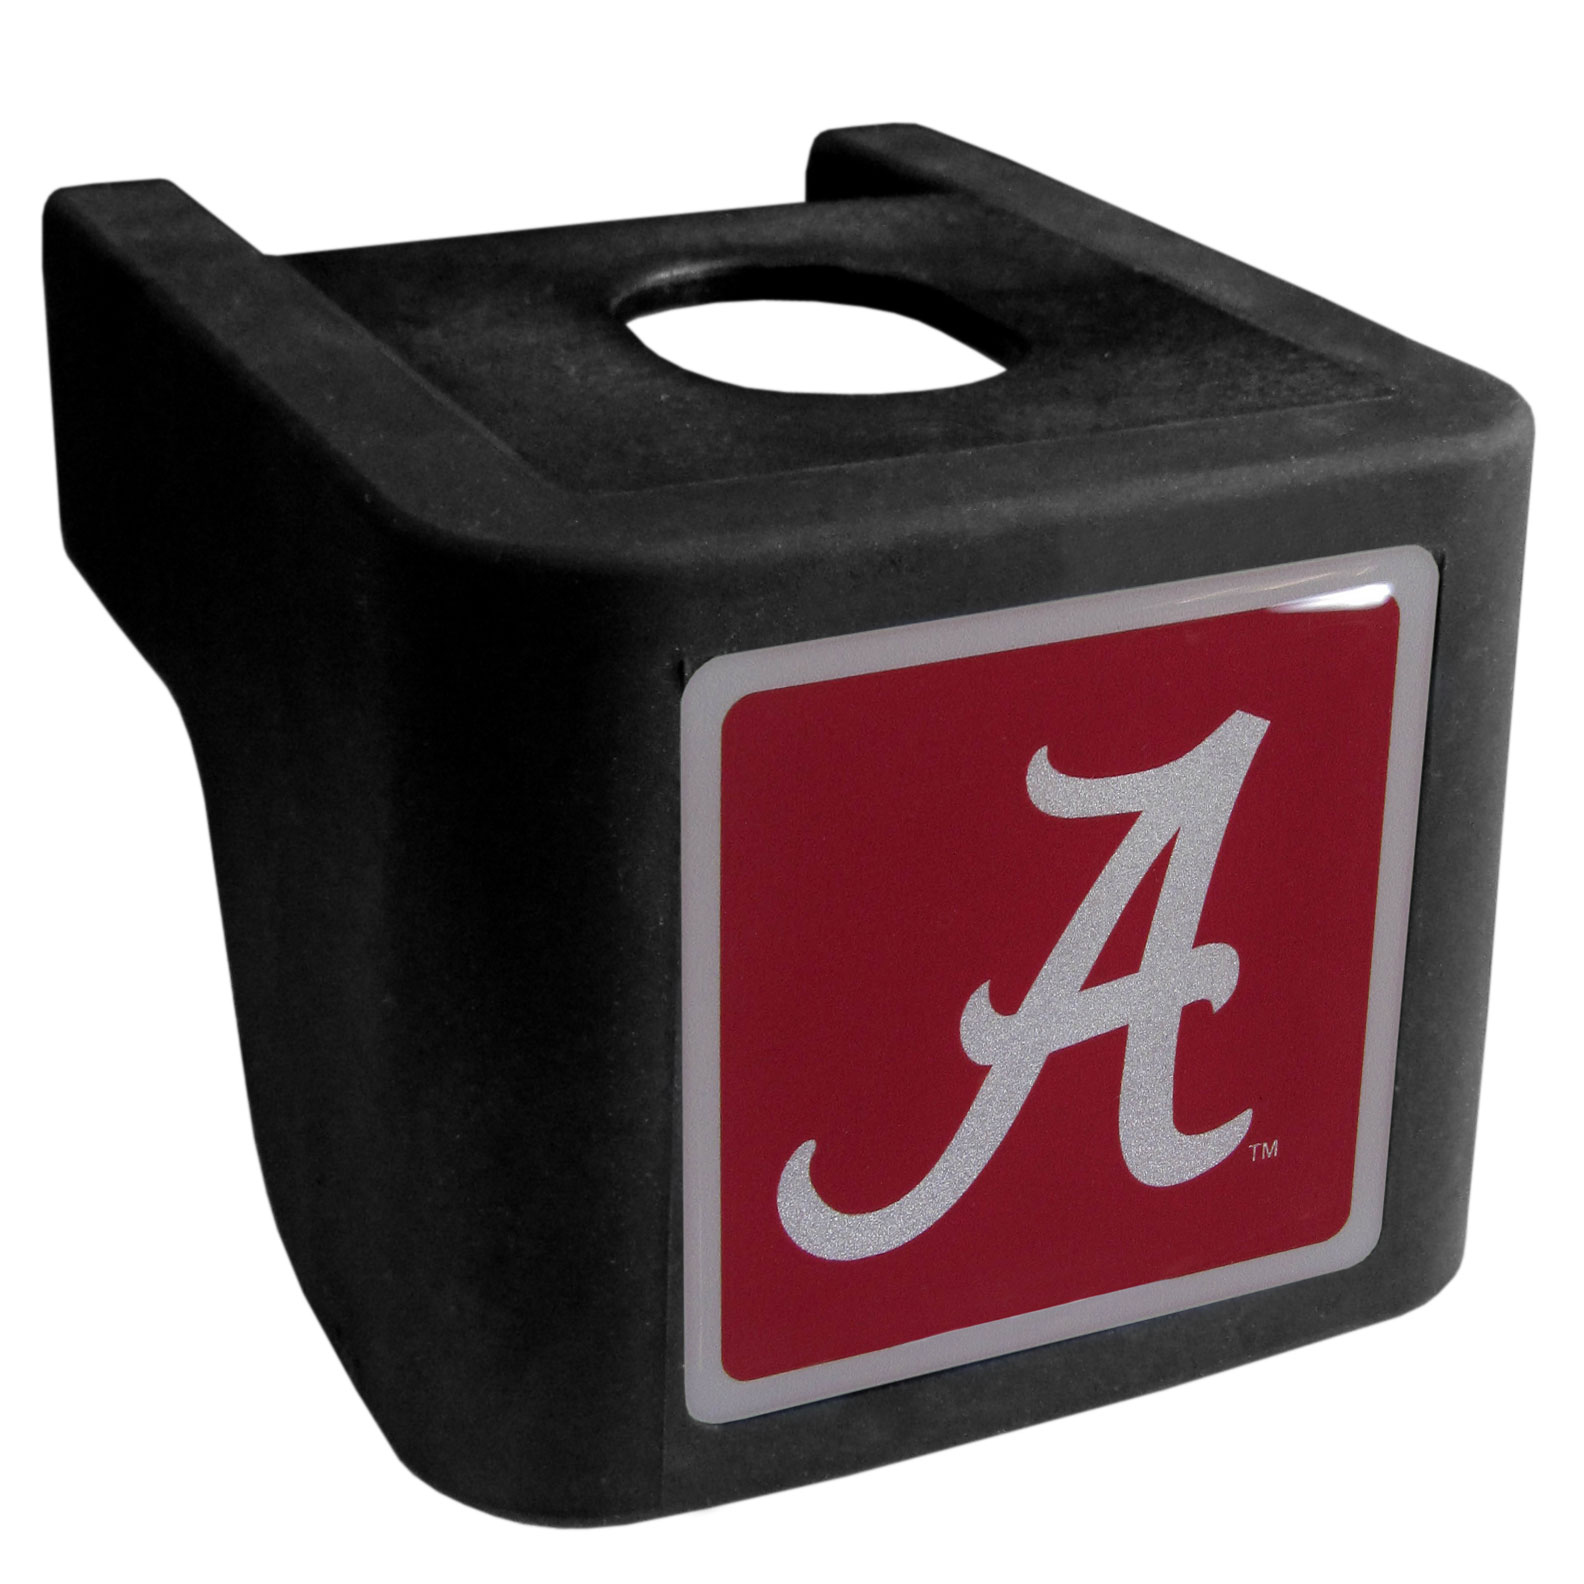 Alabama Crimson Tide Shin Shield Hitch Cover - This unique hitch cover features a large Alabama Crimson Tide logo. If you have ever hooked up a trailer or boat your have probably smashed your shins on the ball hitch a few times. This revolutionary shin shield hitch cover provides your much abused shins with the protection they deserve! The tough rubber hitch is rated to work with Class V hitch receivers hauling up to 17,000 gross trailer weight and 1,700 tongue weight allowing you to leave it on while hauling.